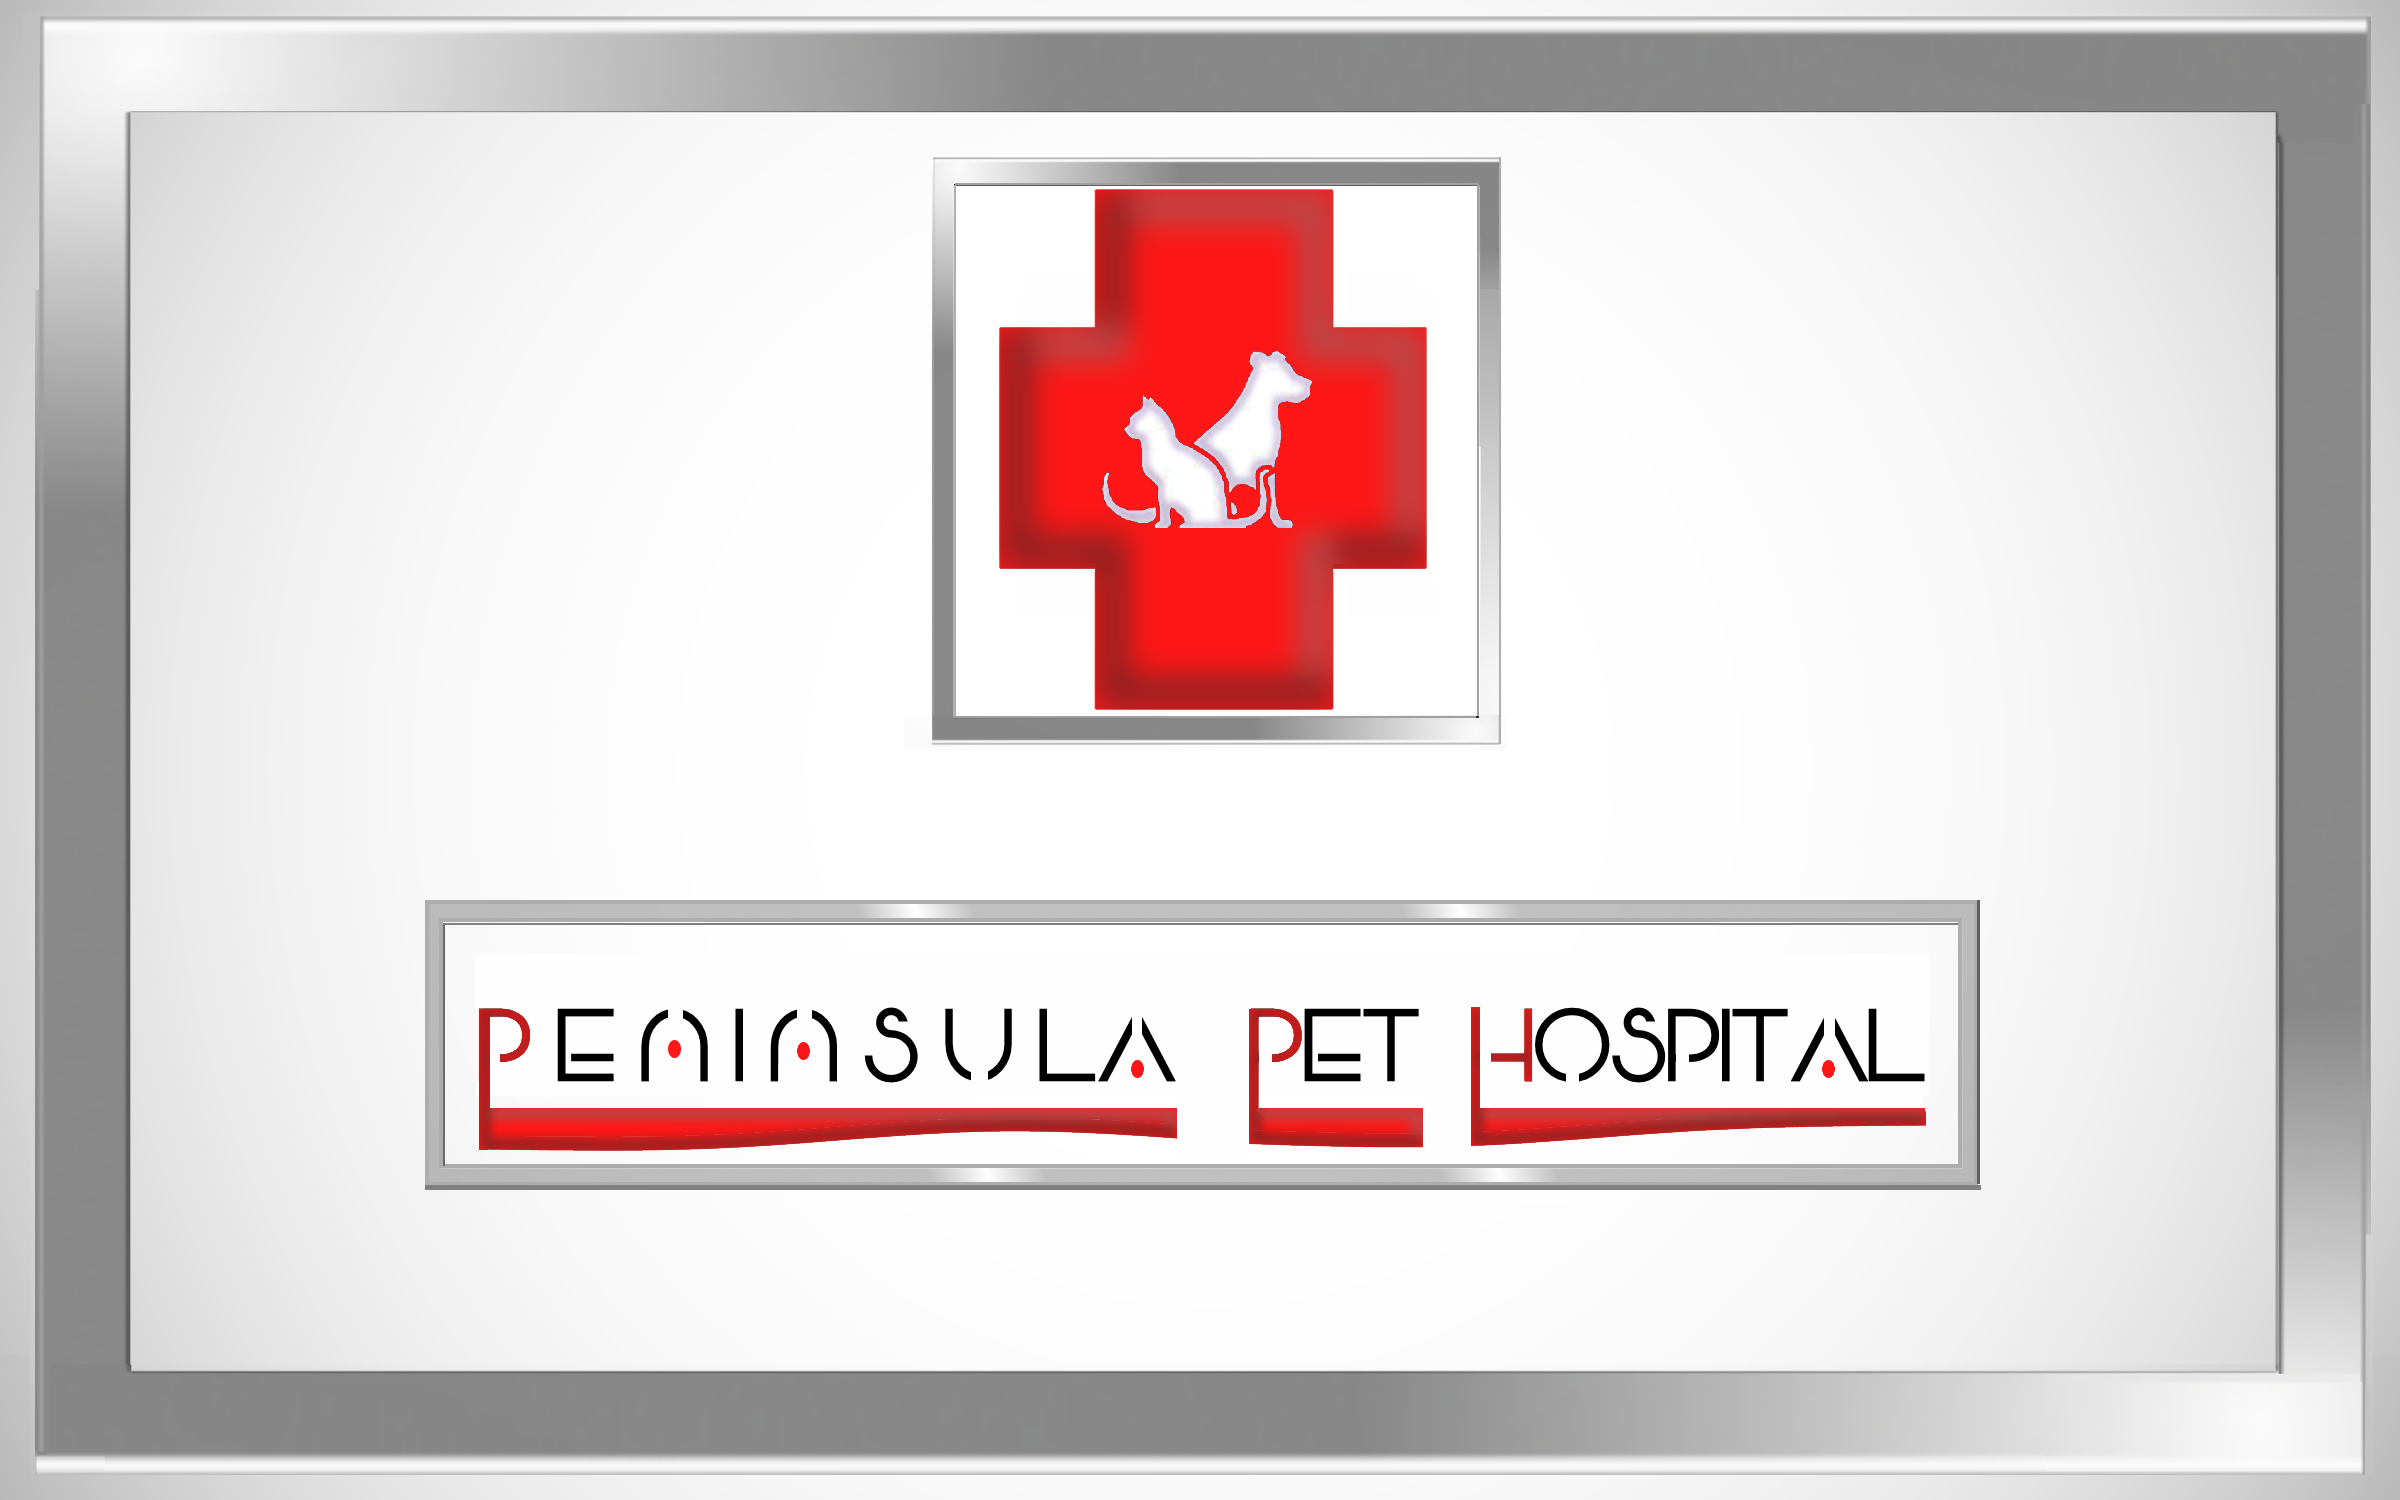 Logo Design by Roberto Bassi - Entry No. 174 in the Logo Design Contest Creative Logo Design for Peninsula Pet Hospital.